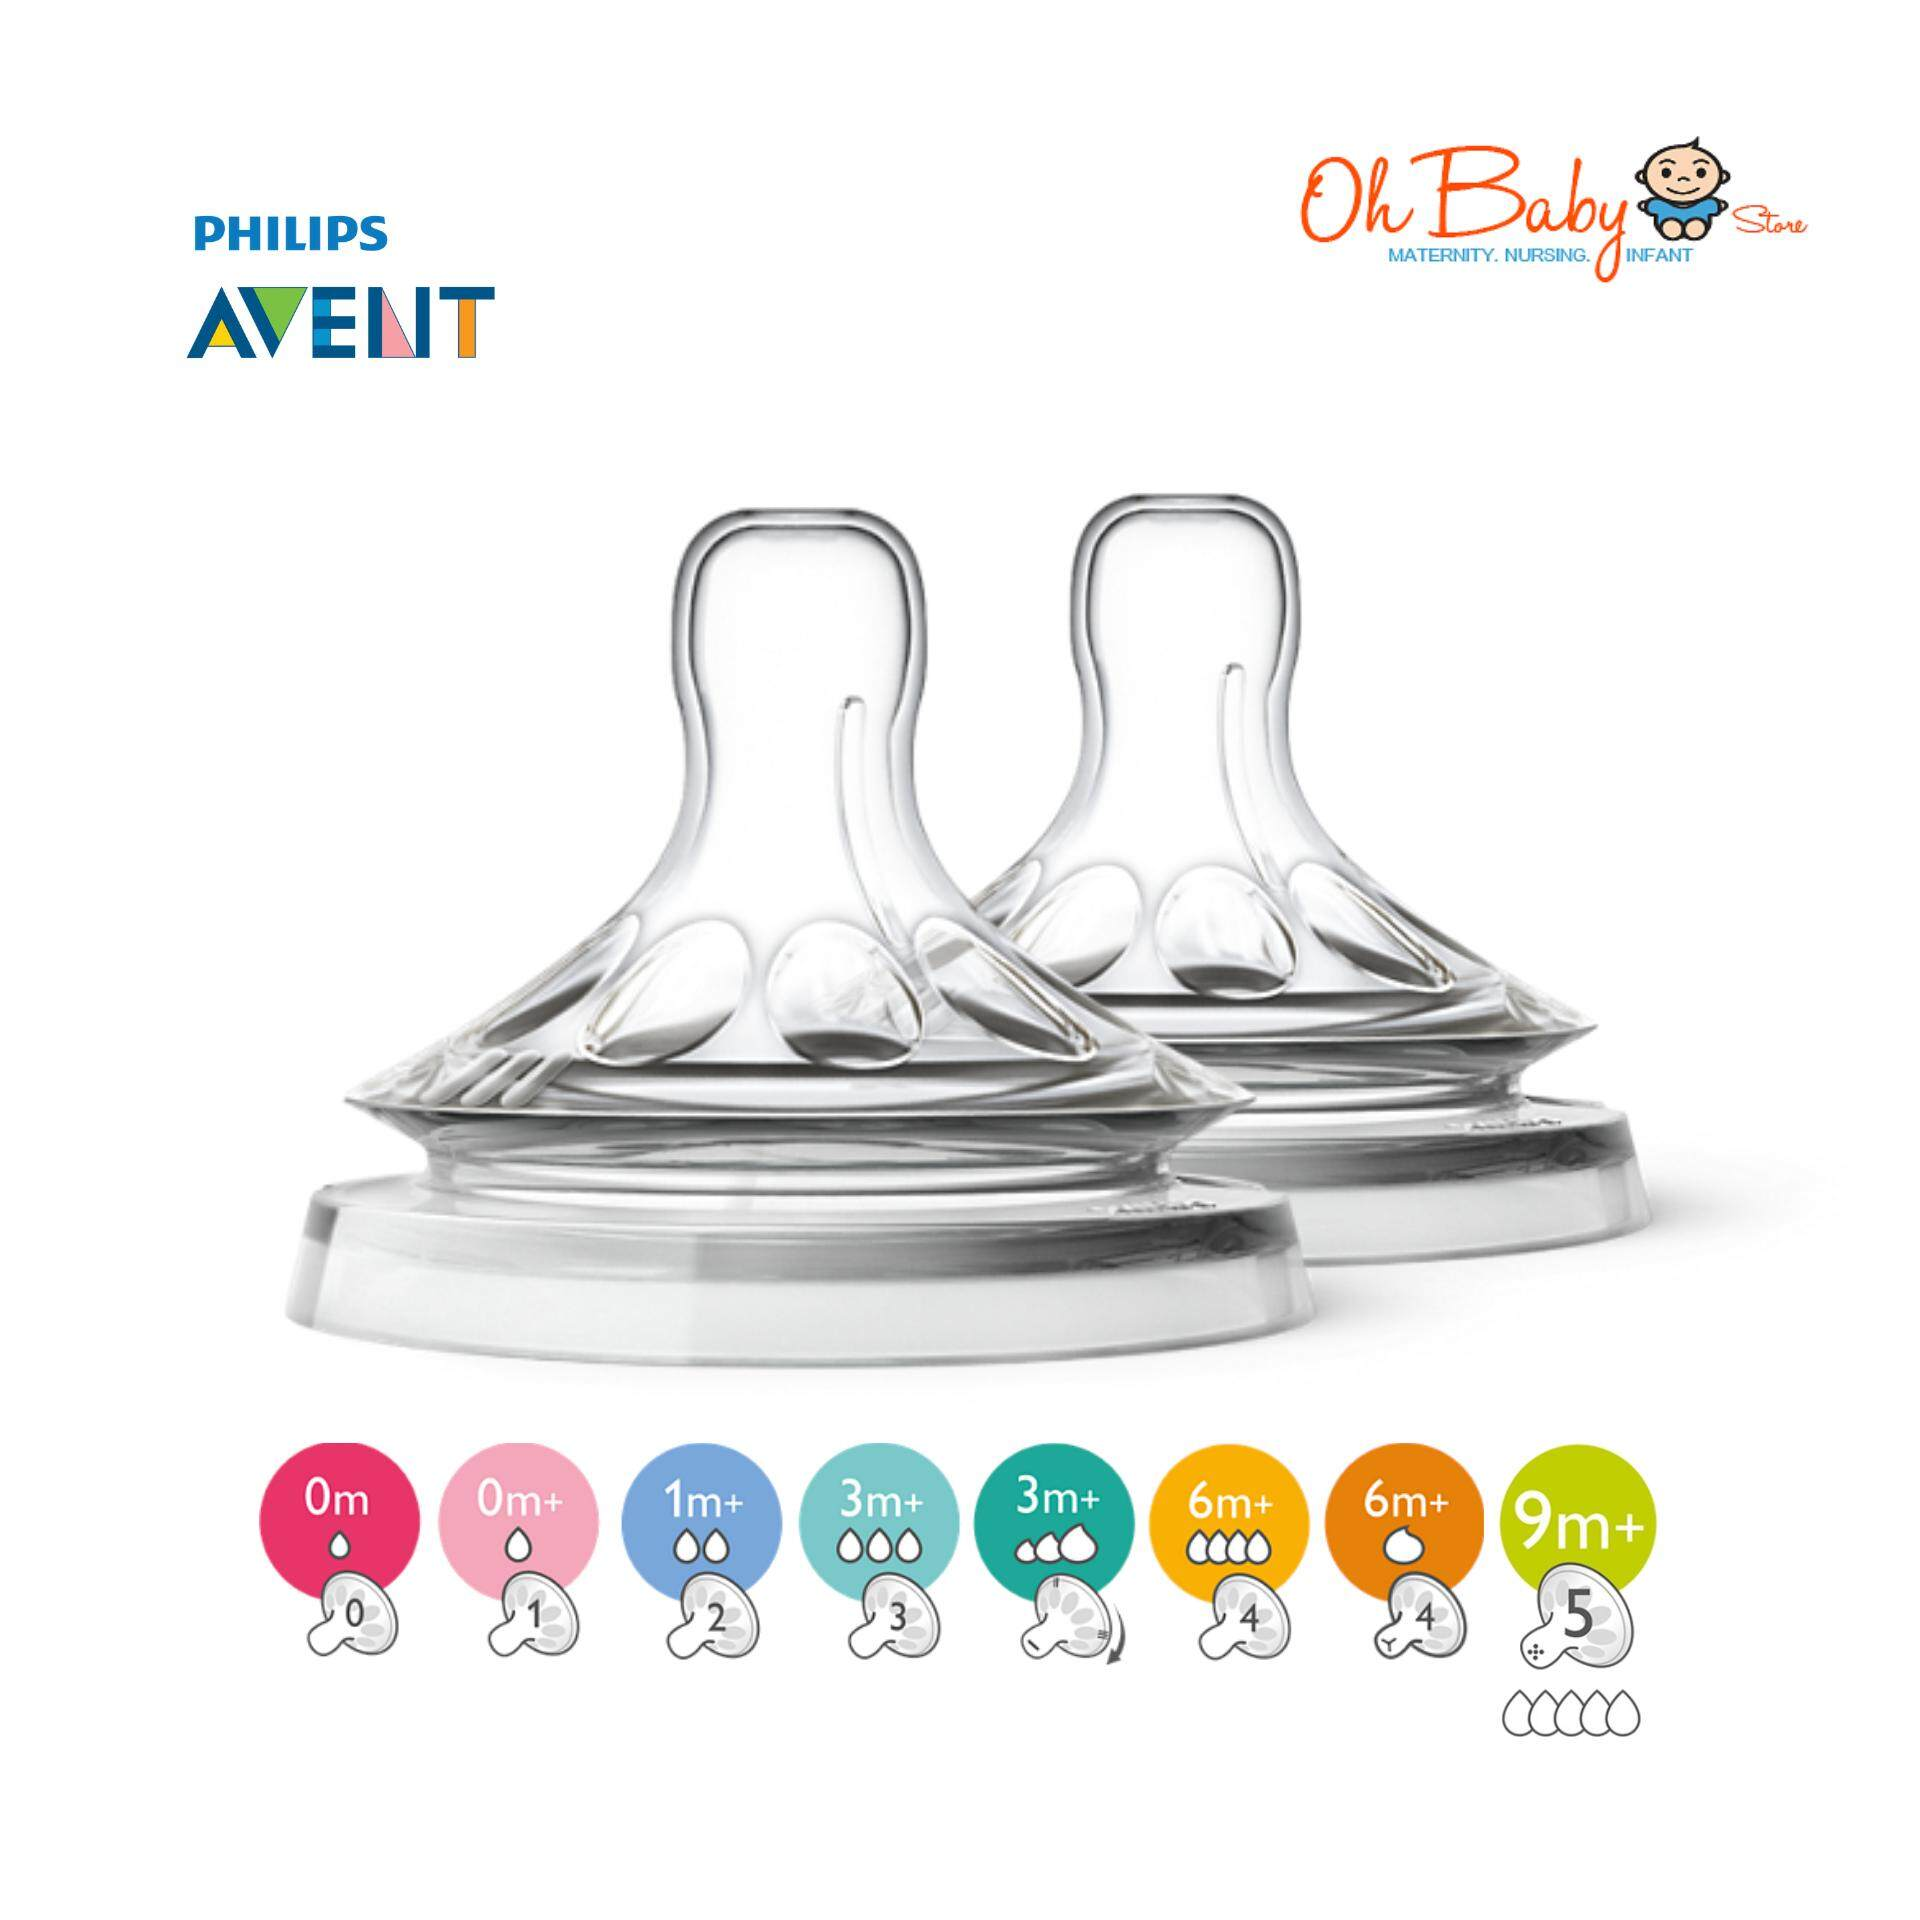 Avent - Natural Teats 0m Up To 9m+ (2pcs) By Oh Baby Store.